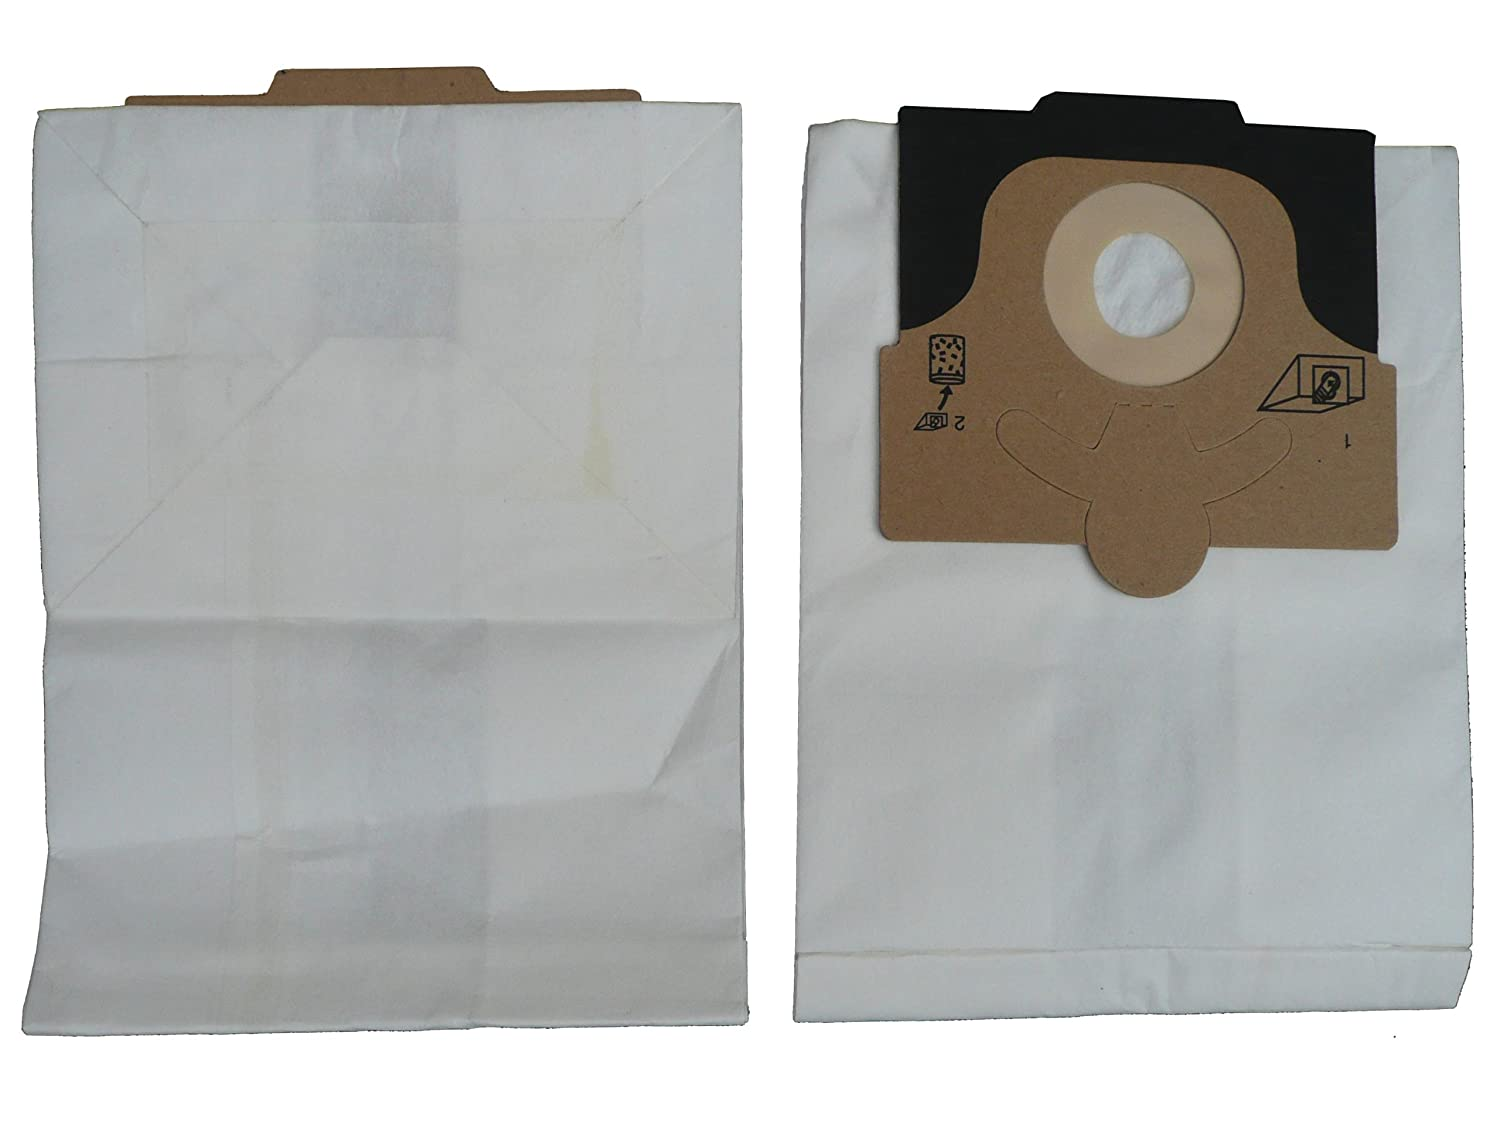 3 Eureka EX Allergy canister Vacuum Bags Excalibur, Home Cleaning System, Oxygen Vacuum Cleaners, 60284, 60284A-12 , 60284B-6, 6798, 6978 , 6982 , 6983 , 6984 , 6993